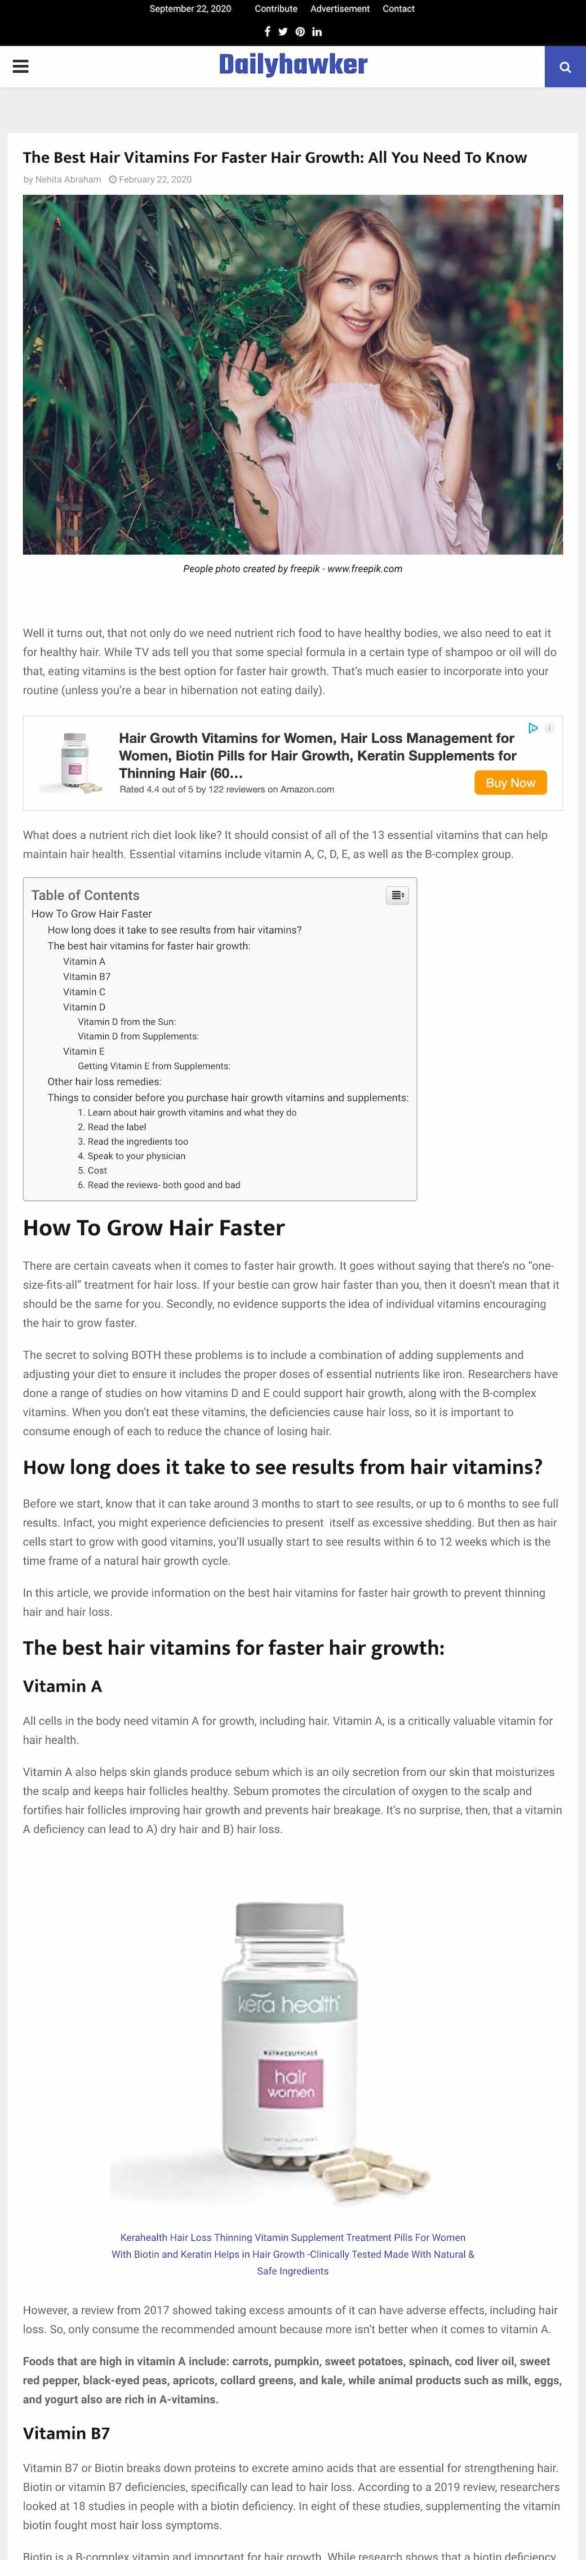 The Best Hair Vitamins For Faster Hair Growth: All You Need To Know